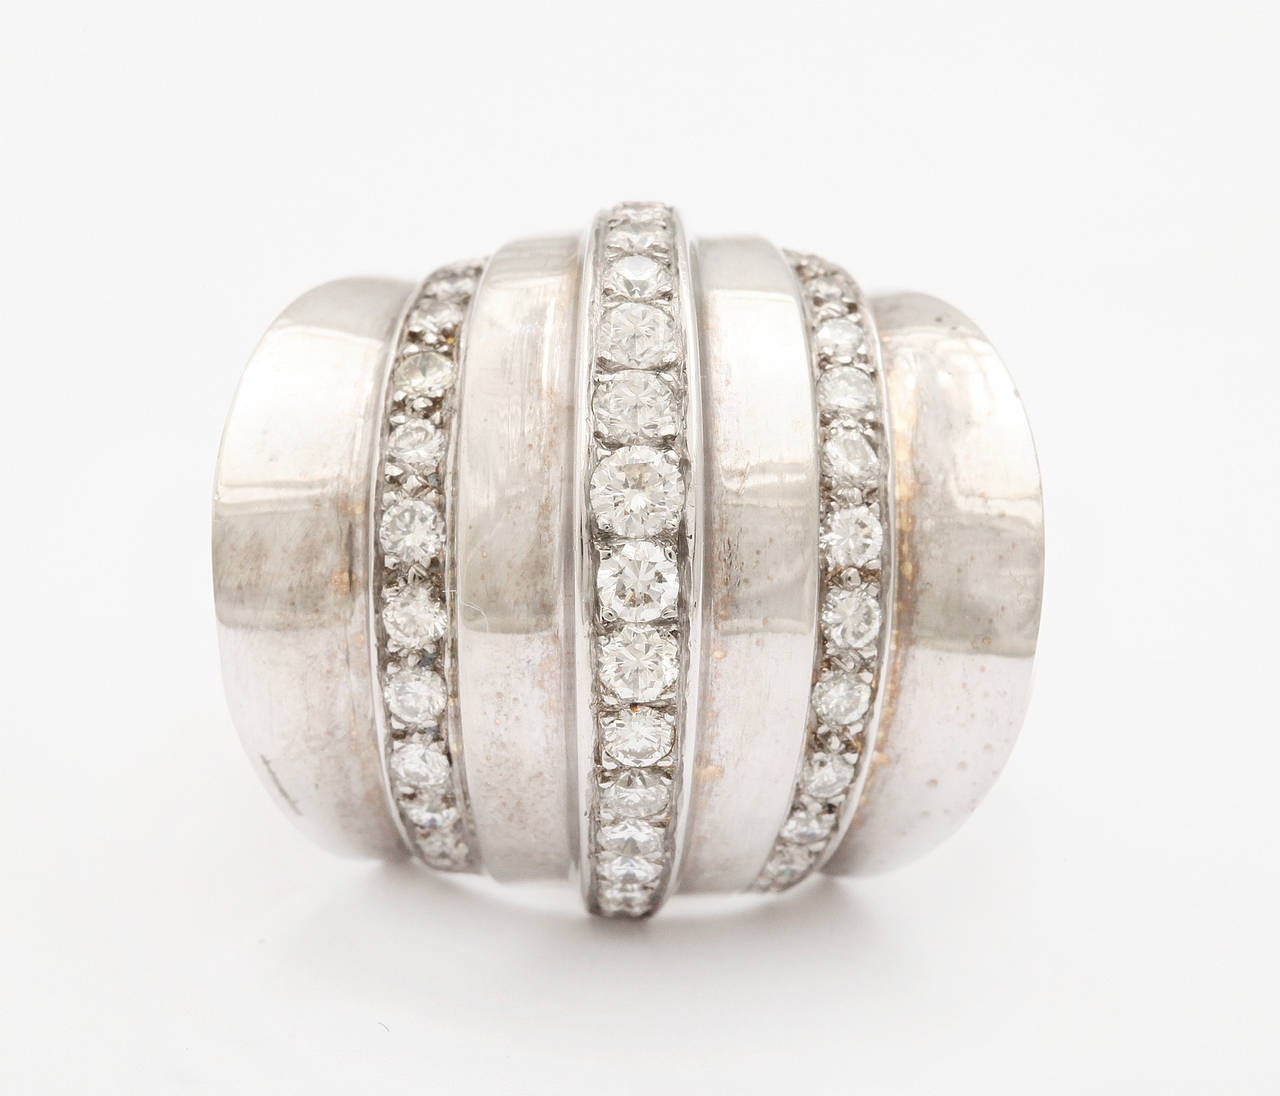 A very bold and stylish Retro ring with strong art deco lines, fashioned of 14K gold and set with simple accent rows of diamonds. Unmarked. Fits a size 8 finger and easily sized up or down.